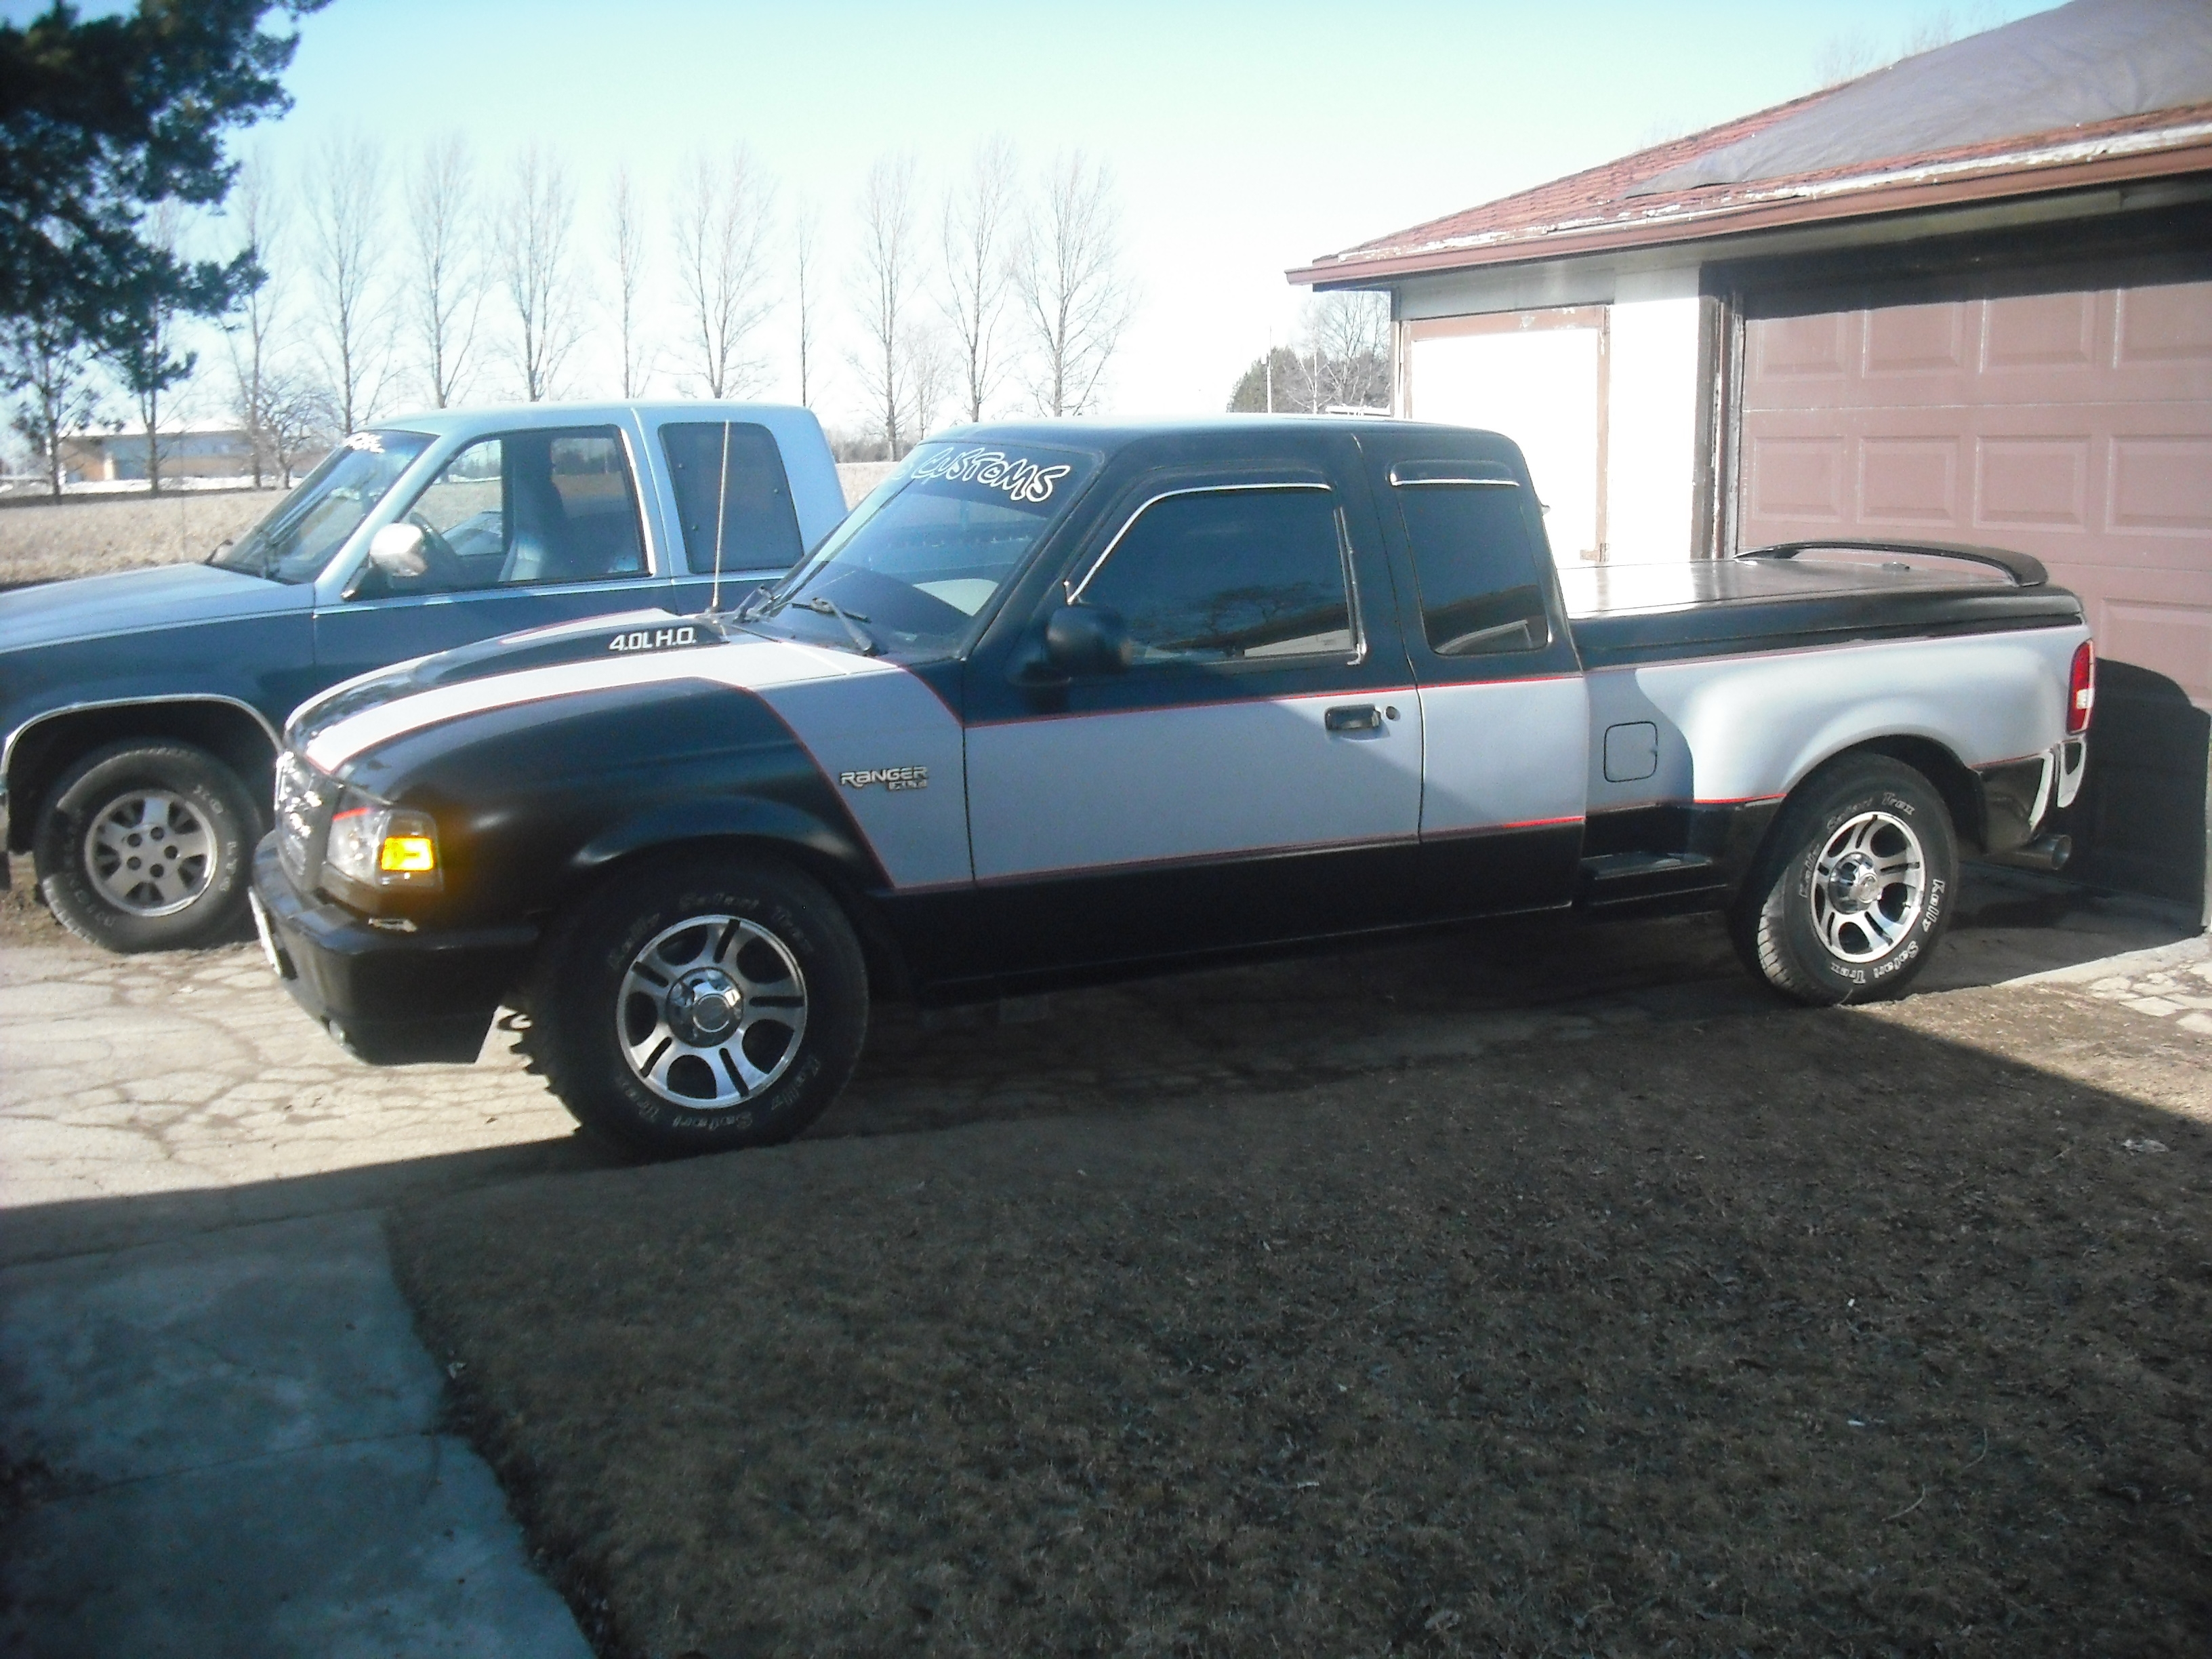 justbimmin 1999 ford ranger super cabpickup 4d specs photos modification info at cardomain. Black Bedroom Furniture Sets. Home Design Ideas